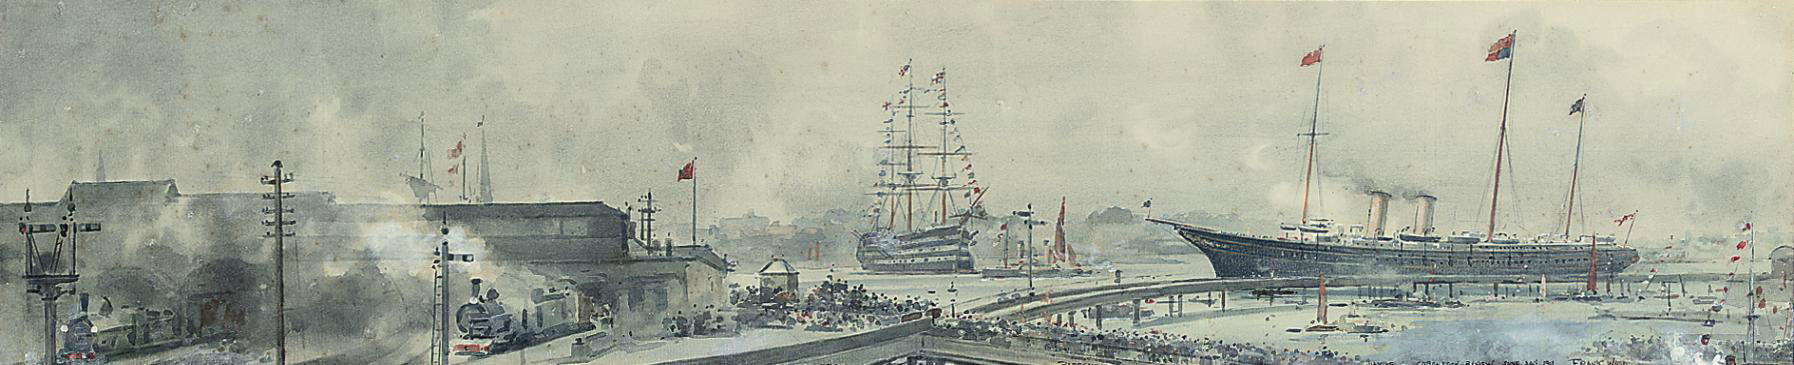 The Coronation Fleet Review of King George V, 24th June 1911, Portsmouth Harbour